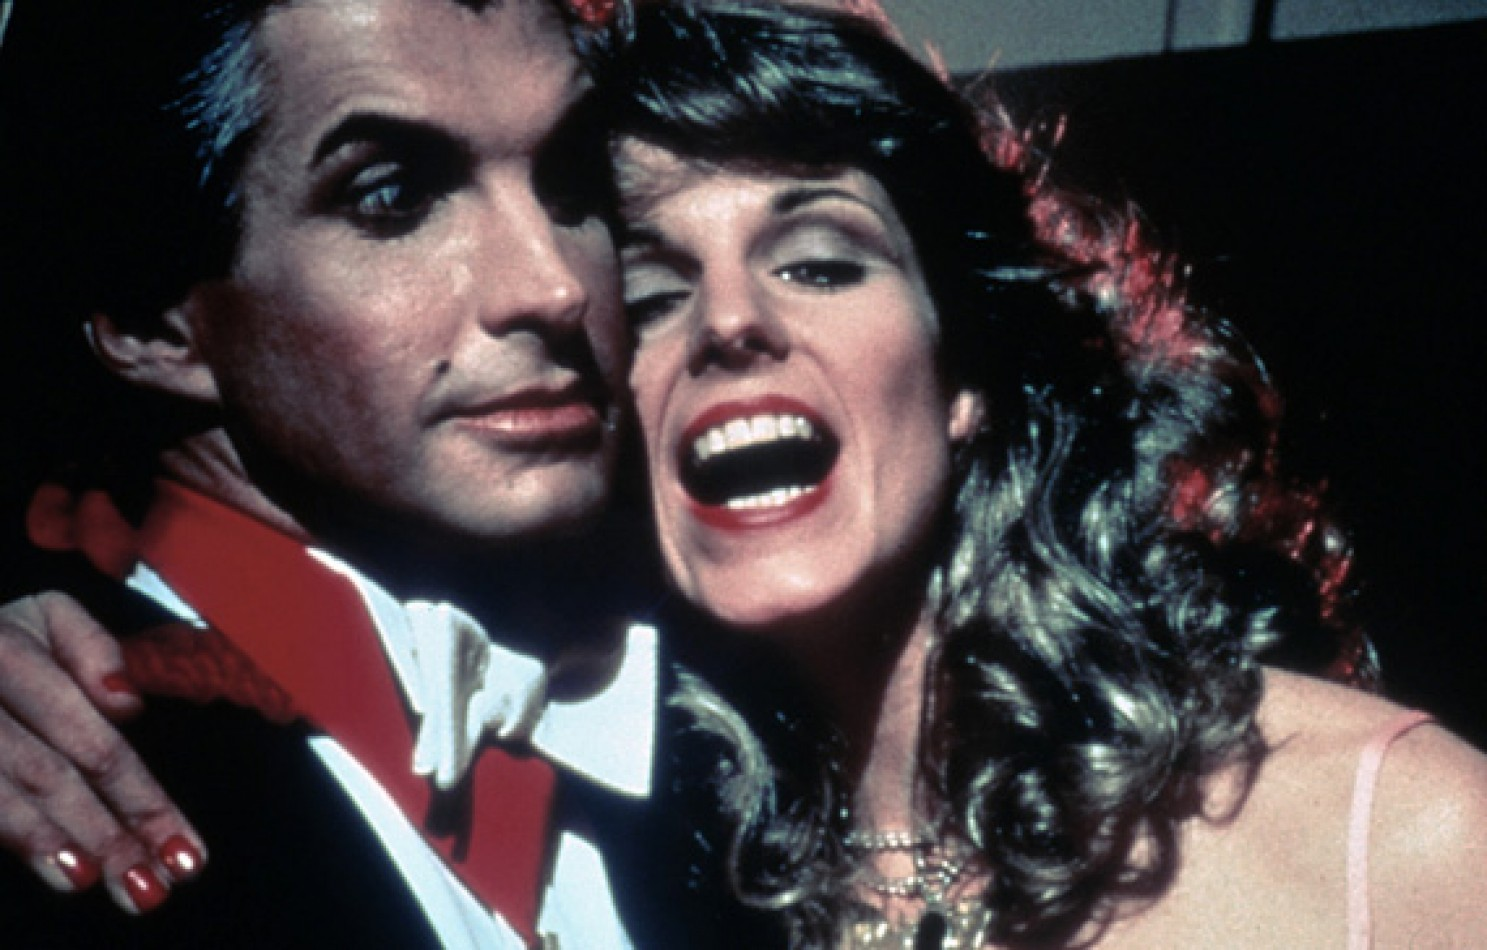 Count Dracula (George Hamilton) and his reincarnated lady love (Susan St James) in Love at First Bite (1979)